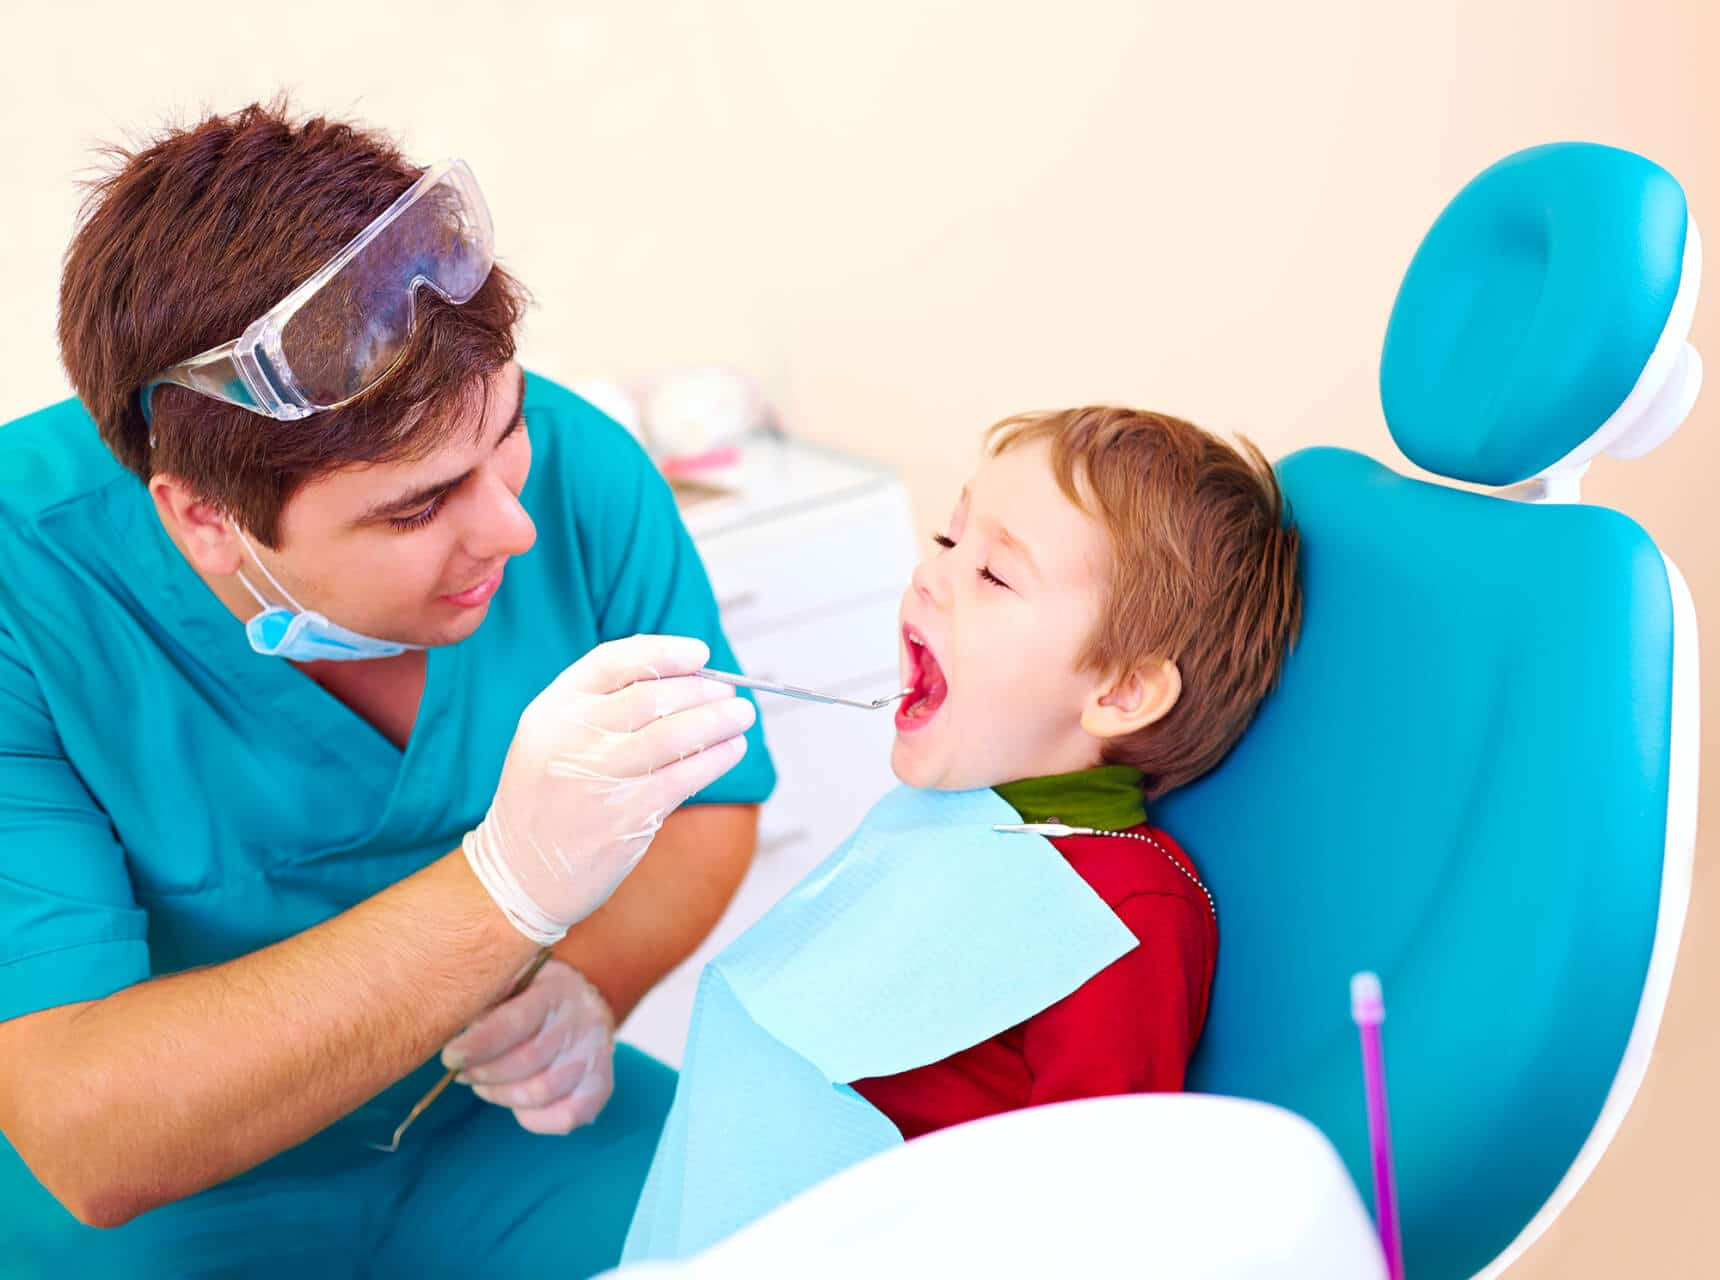 Where can I find the best kids dentist in Boca Raton?